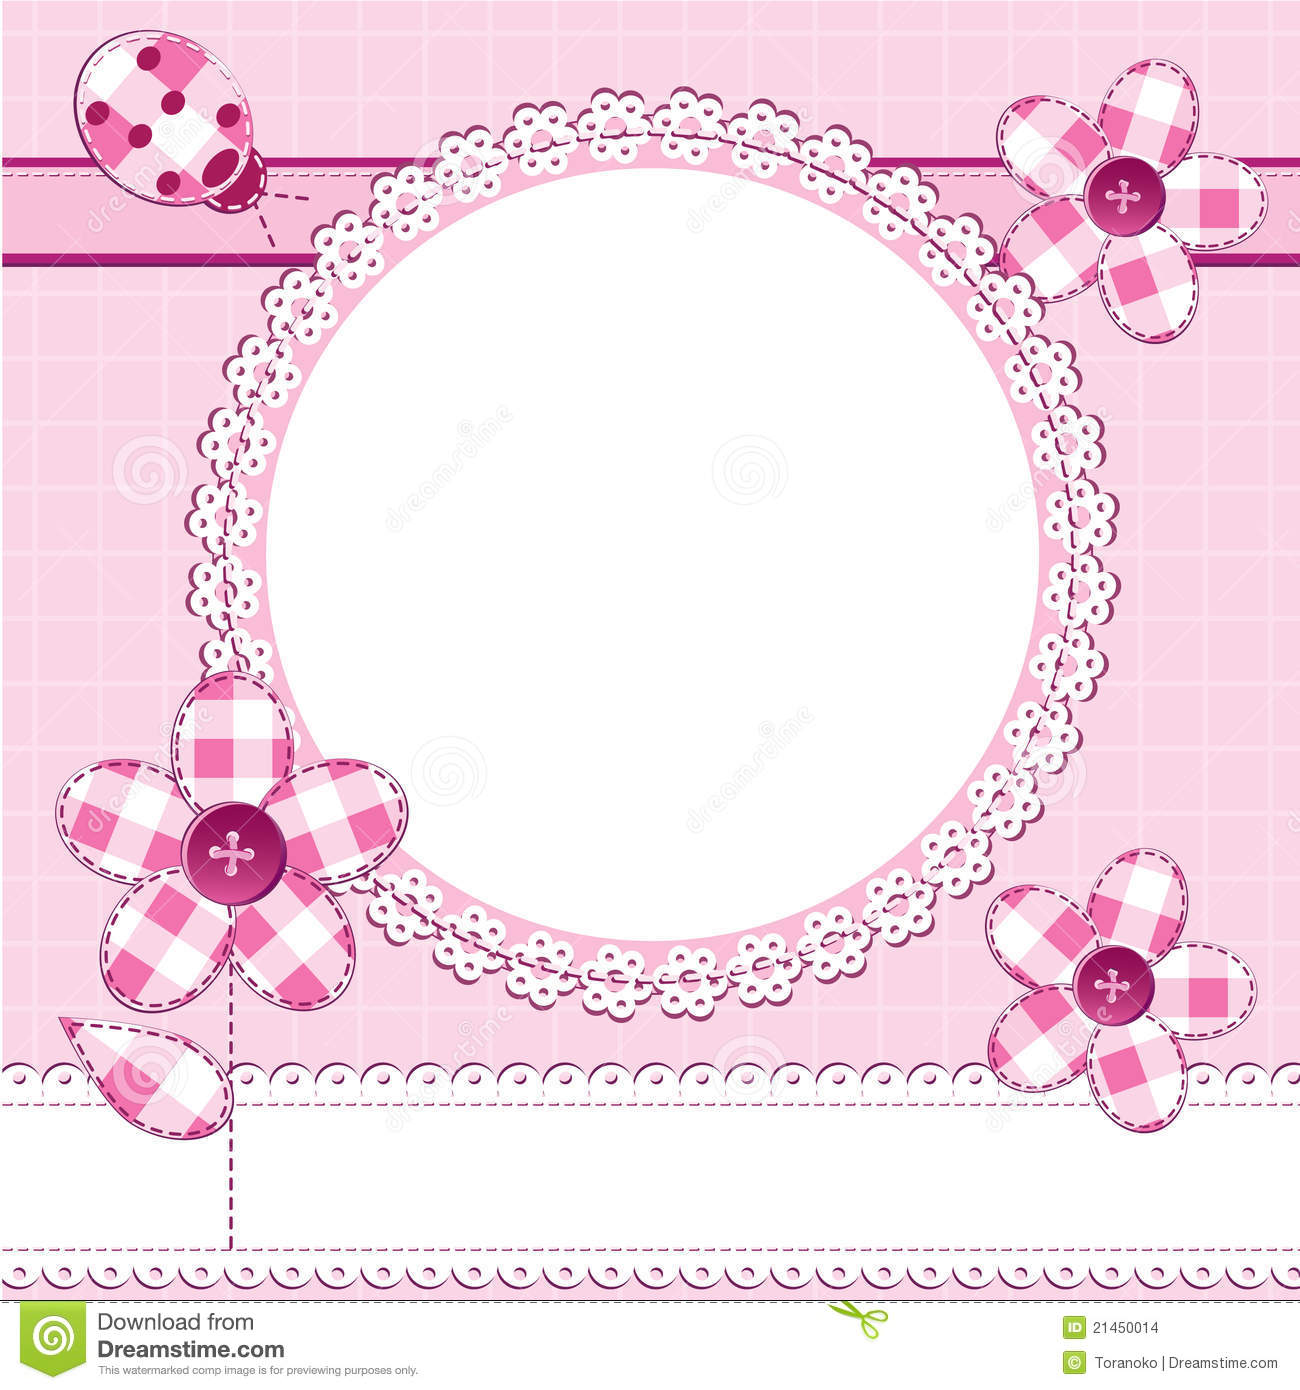 How to scrapbook for baby girl - Photo Frame In A Scrapbook Style